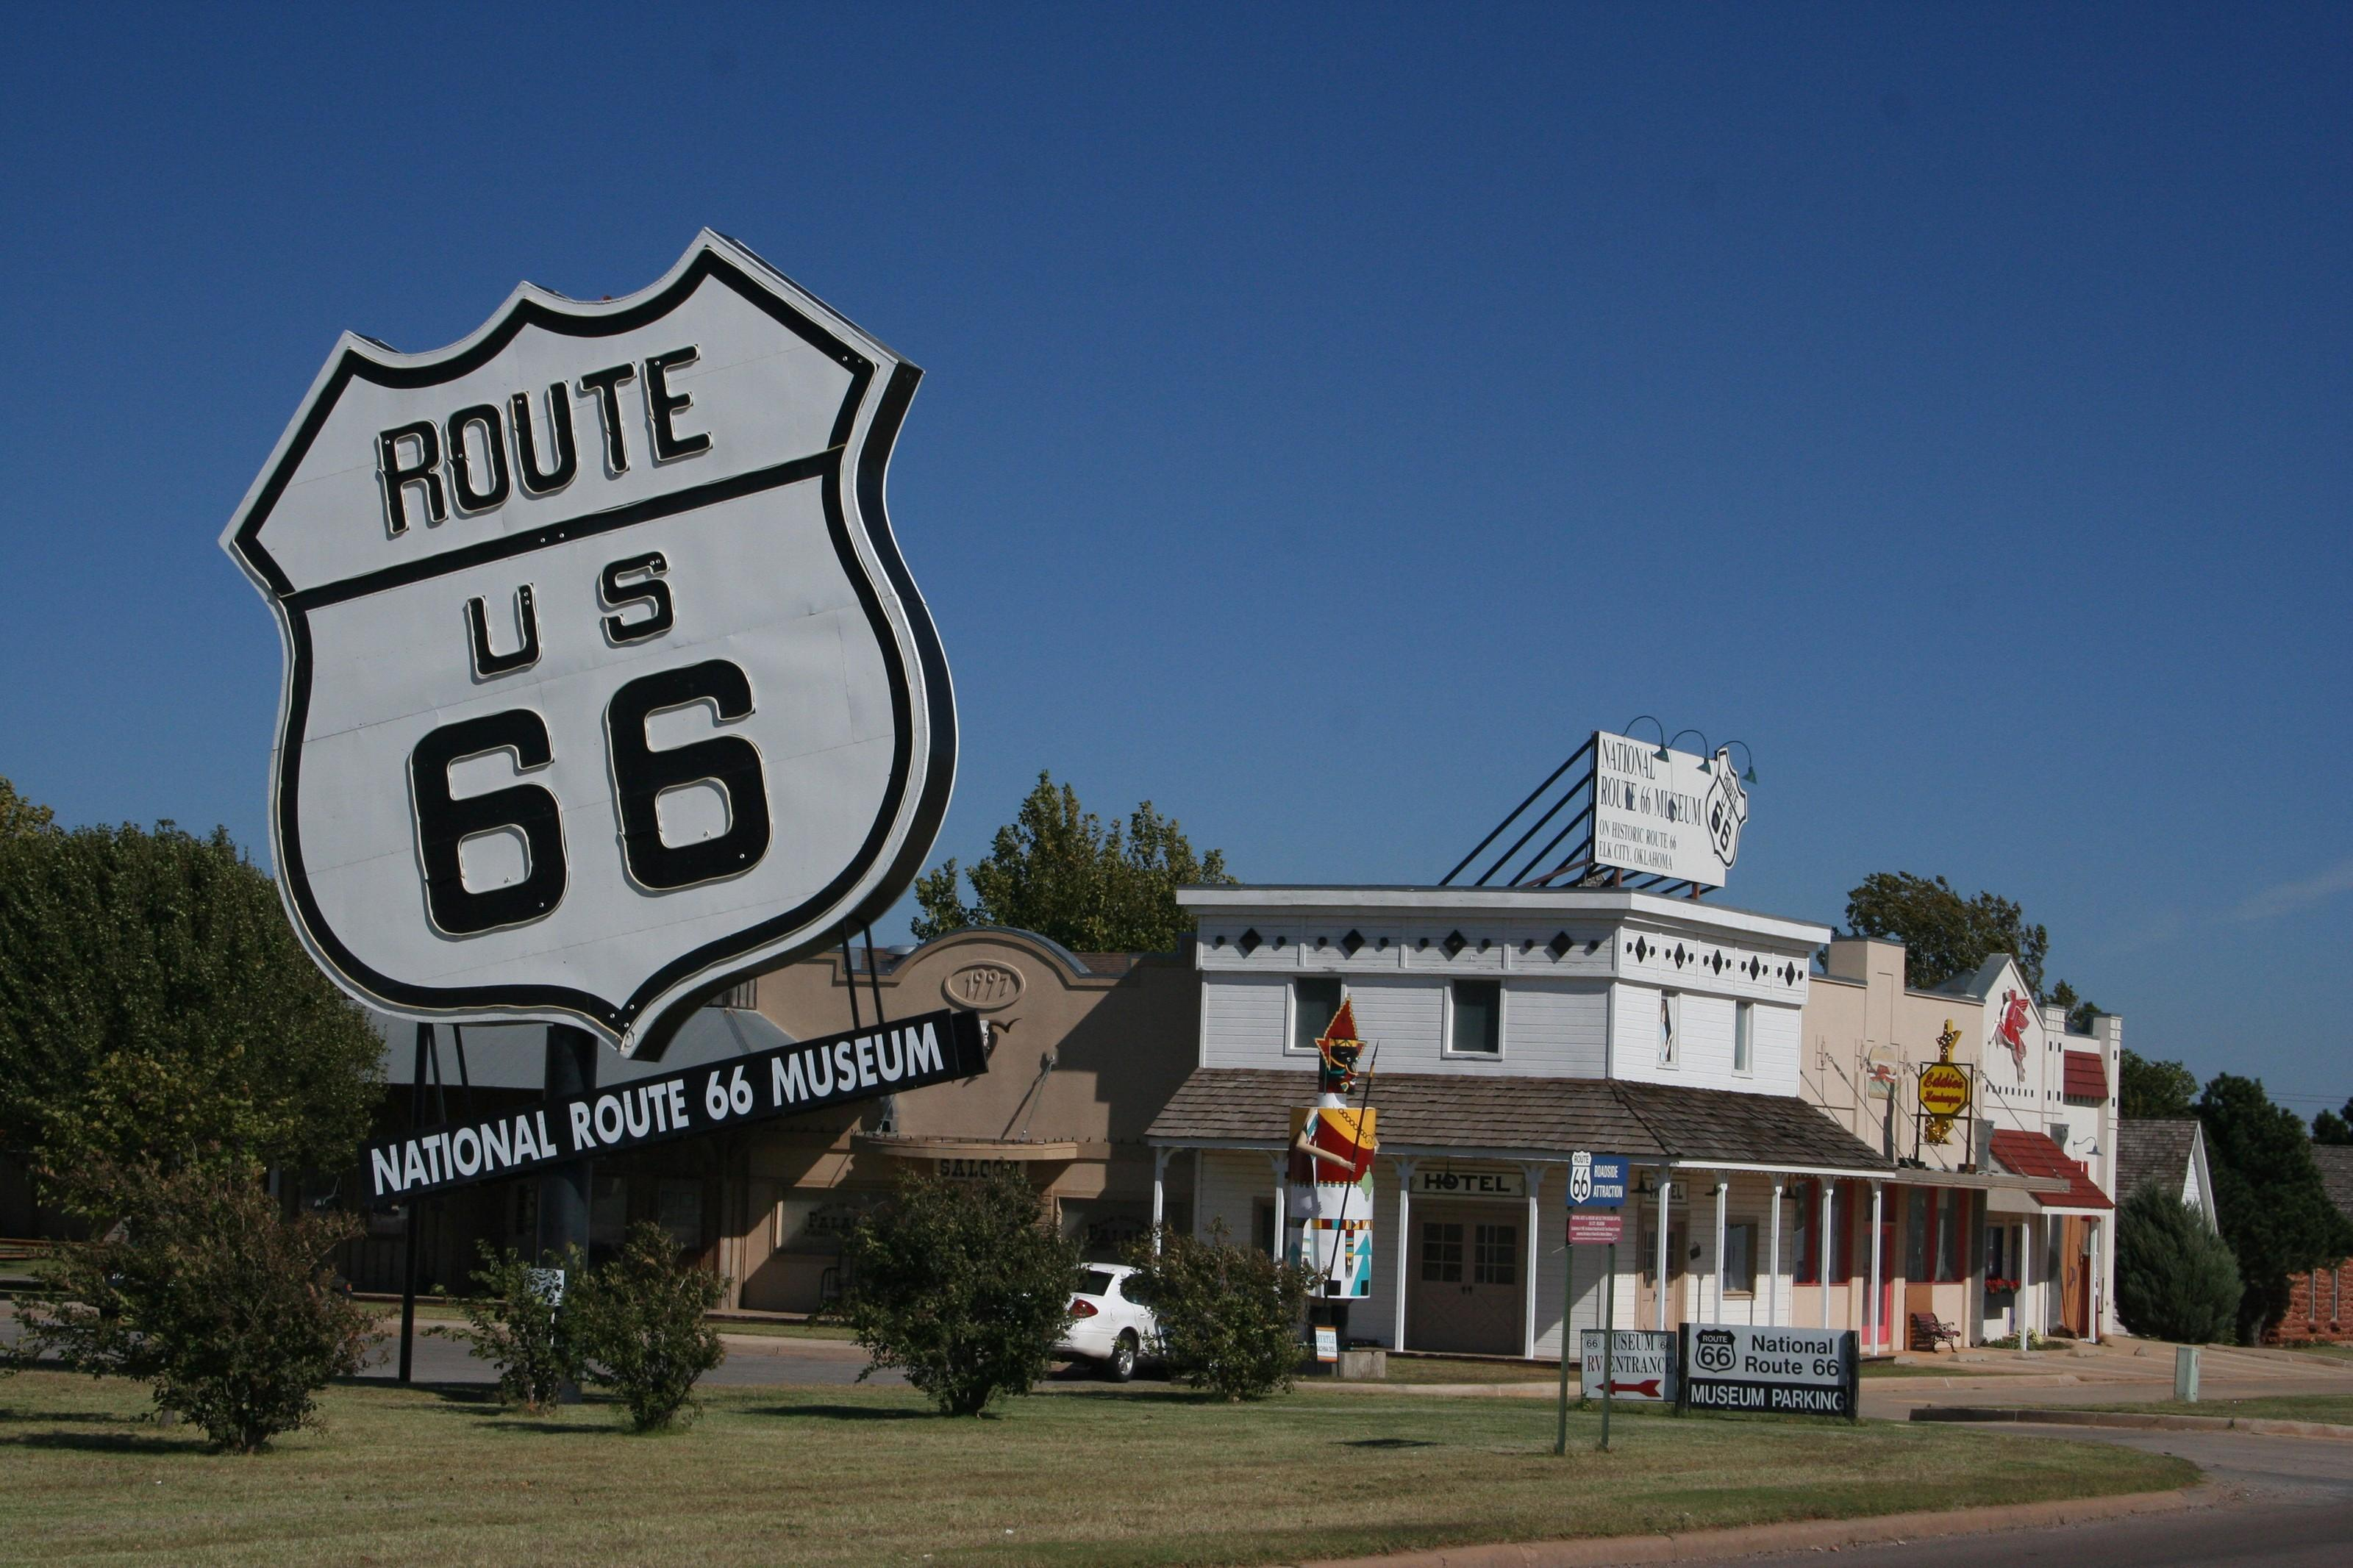 National Route 66 Museum